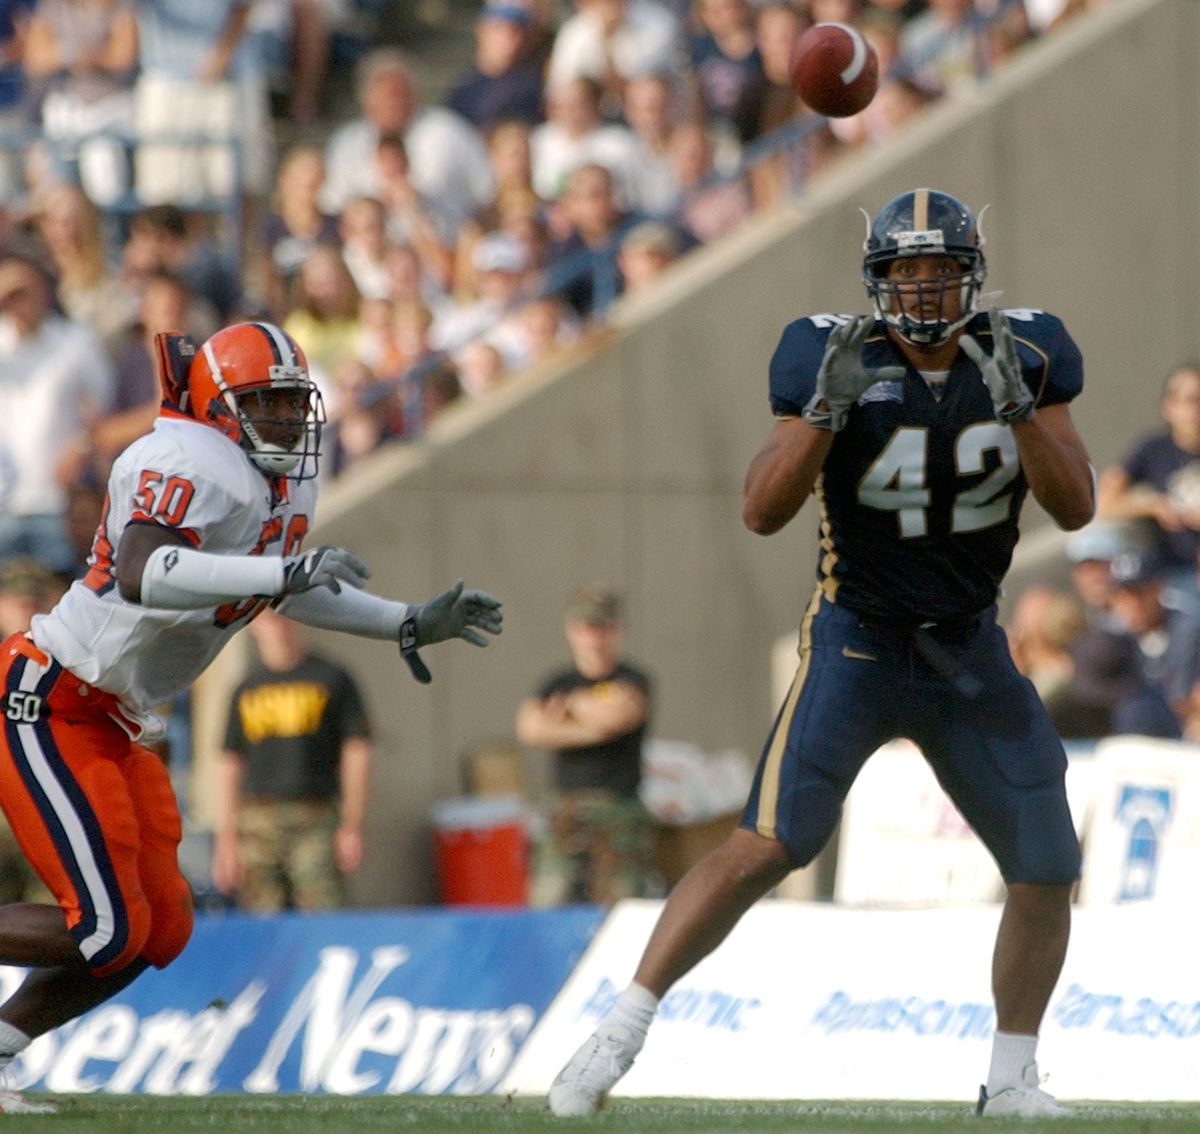 BYU's Gabriel Reid (42) waits for the ball as Syracuse's Jameel Dumas (50) comes in for the tackle at LaVell Edwards Stadium in Provo Thursday, August 29, 2002.